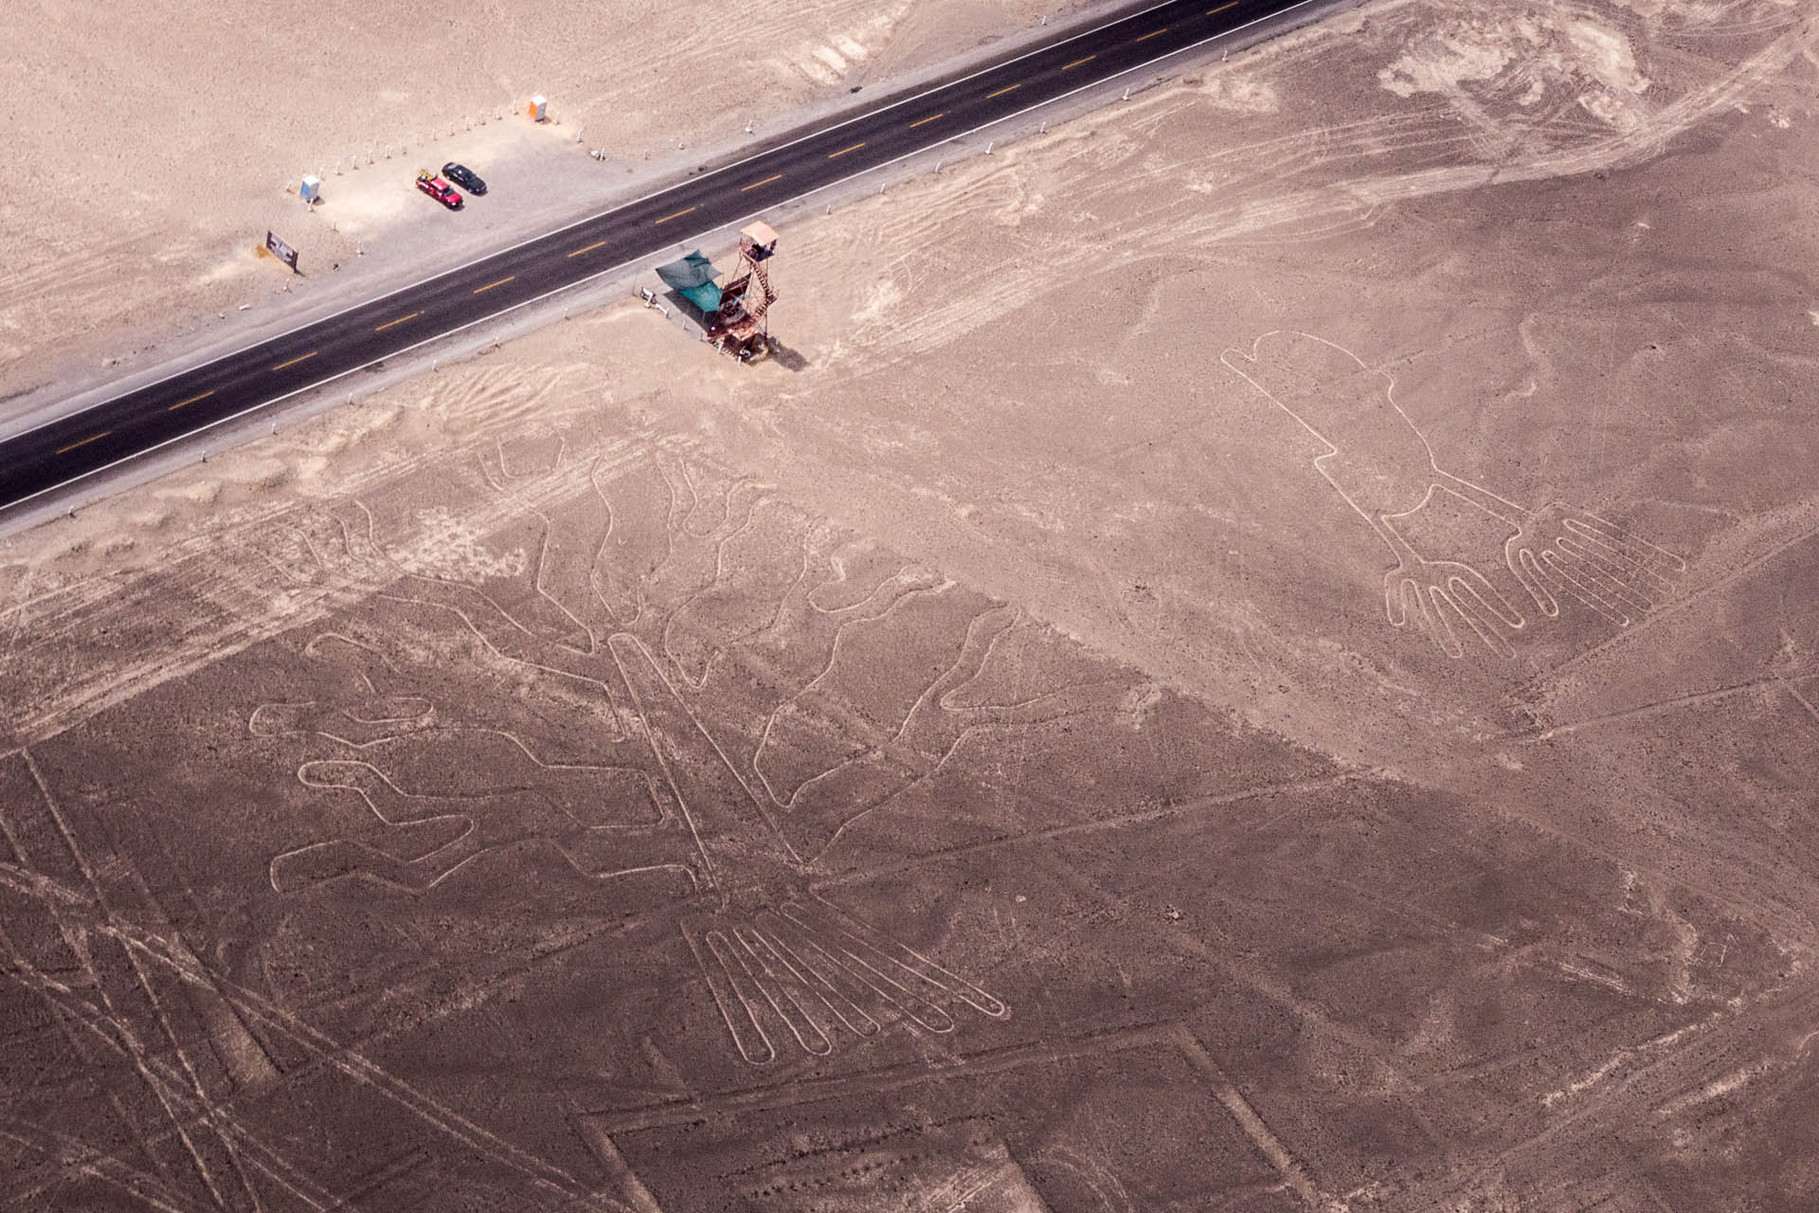 Nazca lines: Tree and Hands